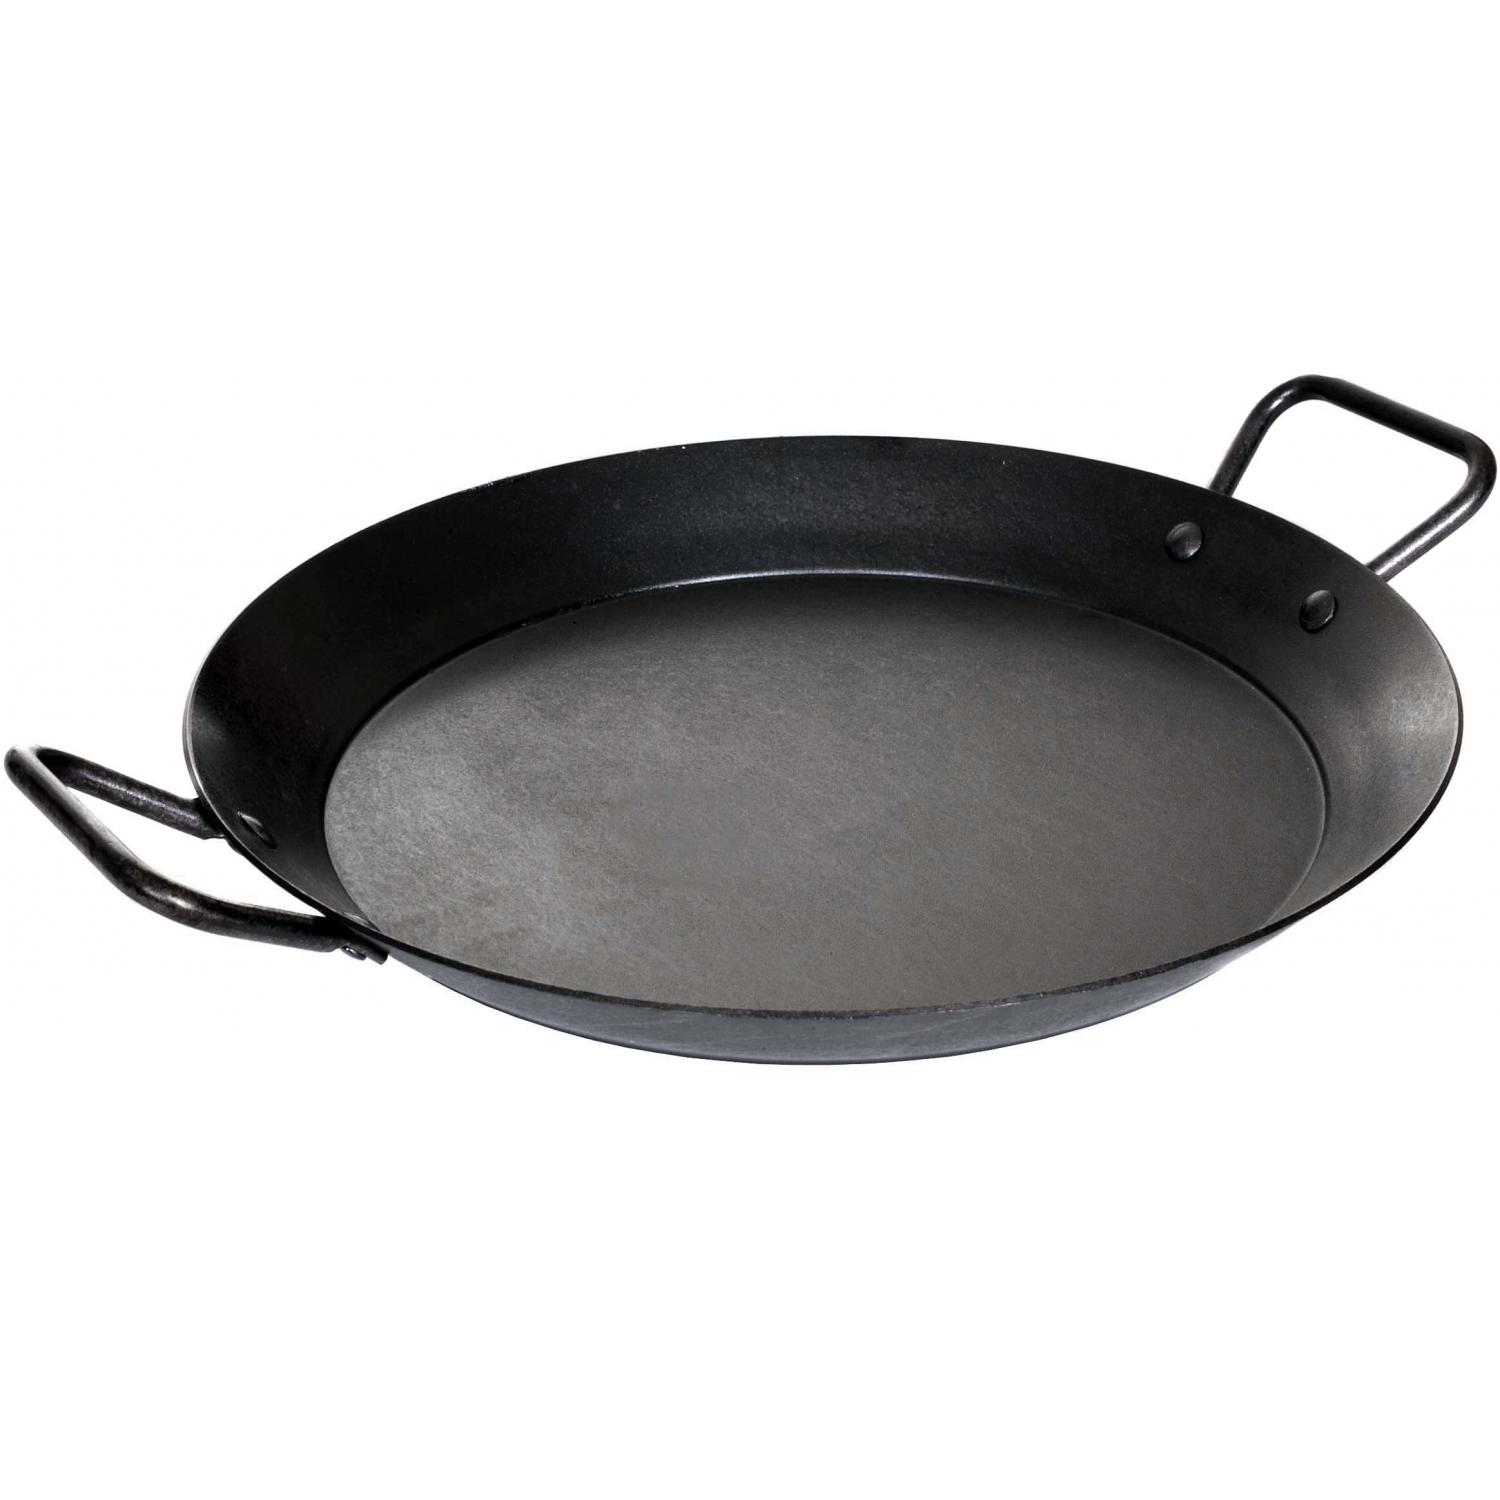 Lodge 15-Inch Seasoned Carbon Steel Skillet & Paella Pan - CRS15